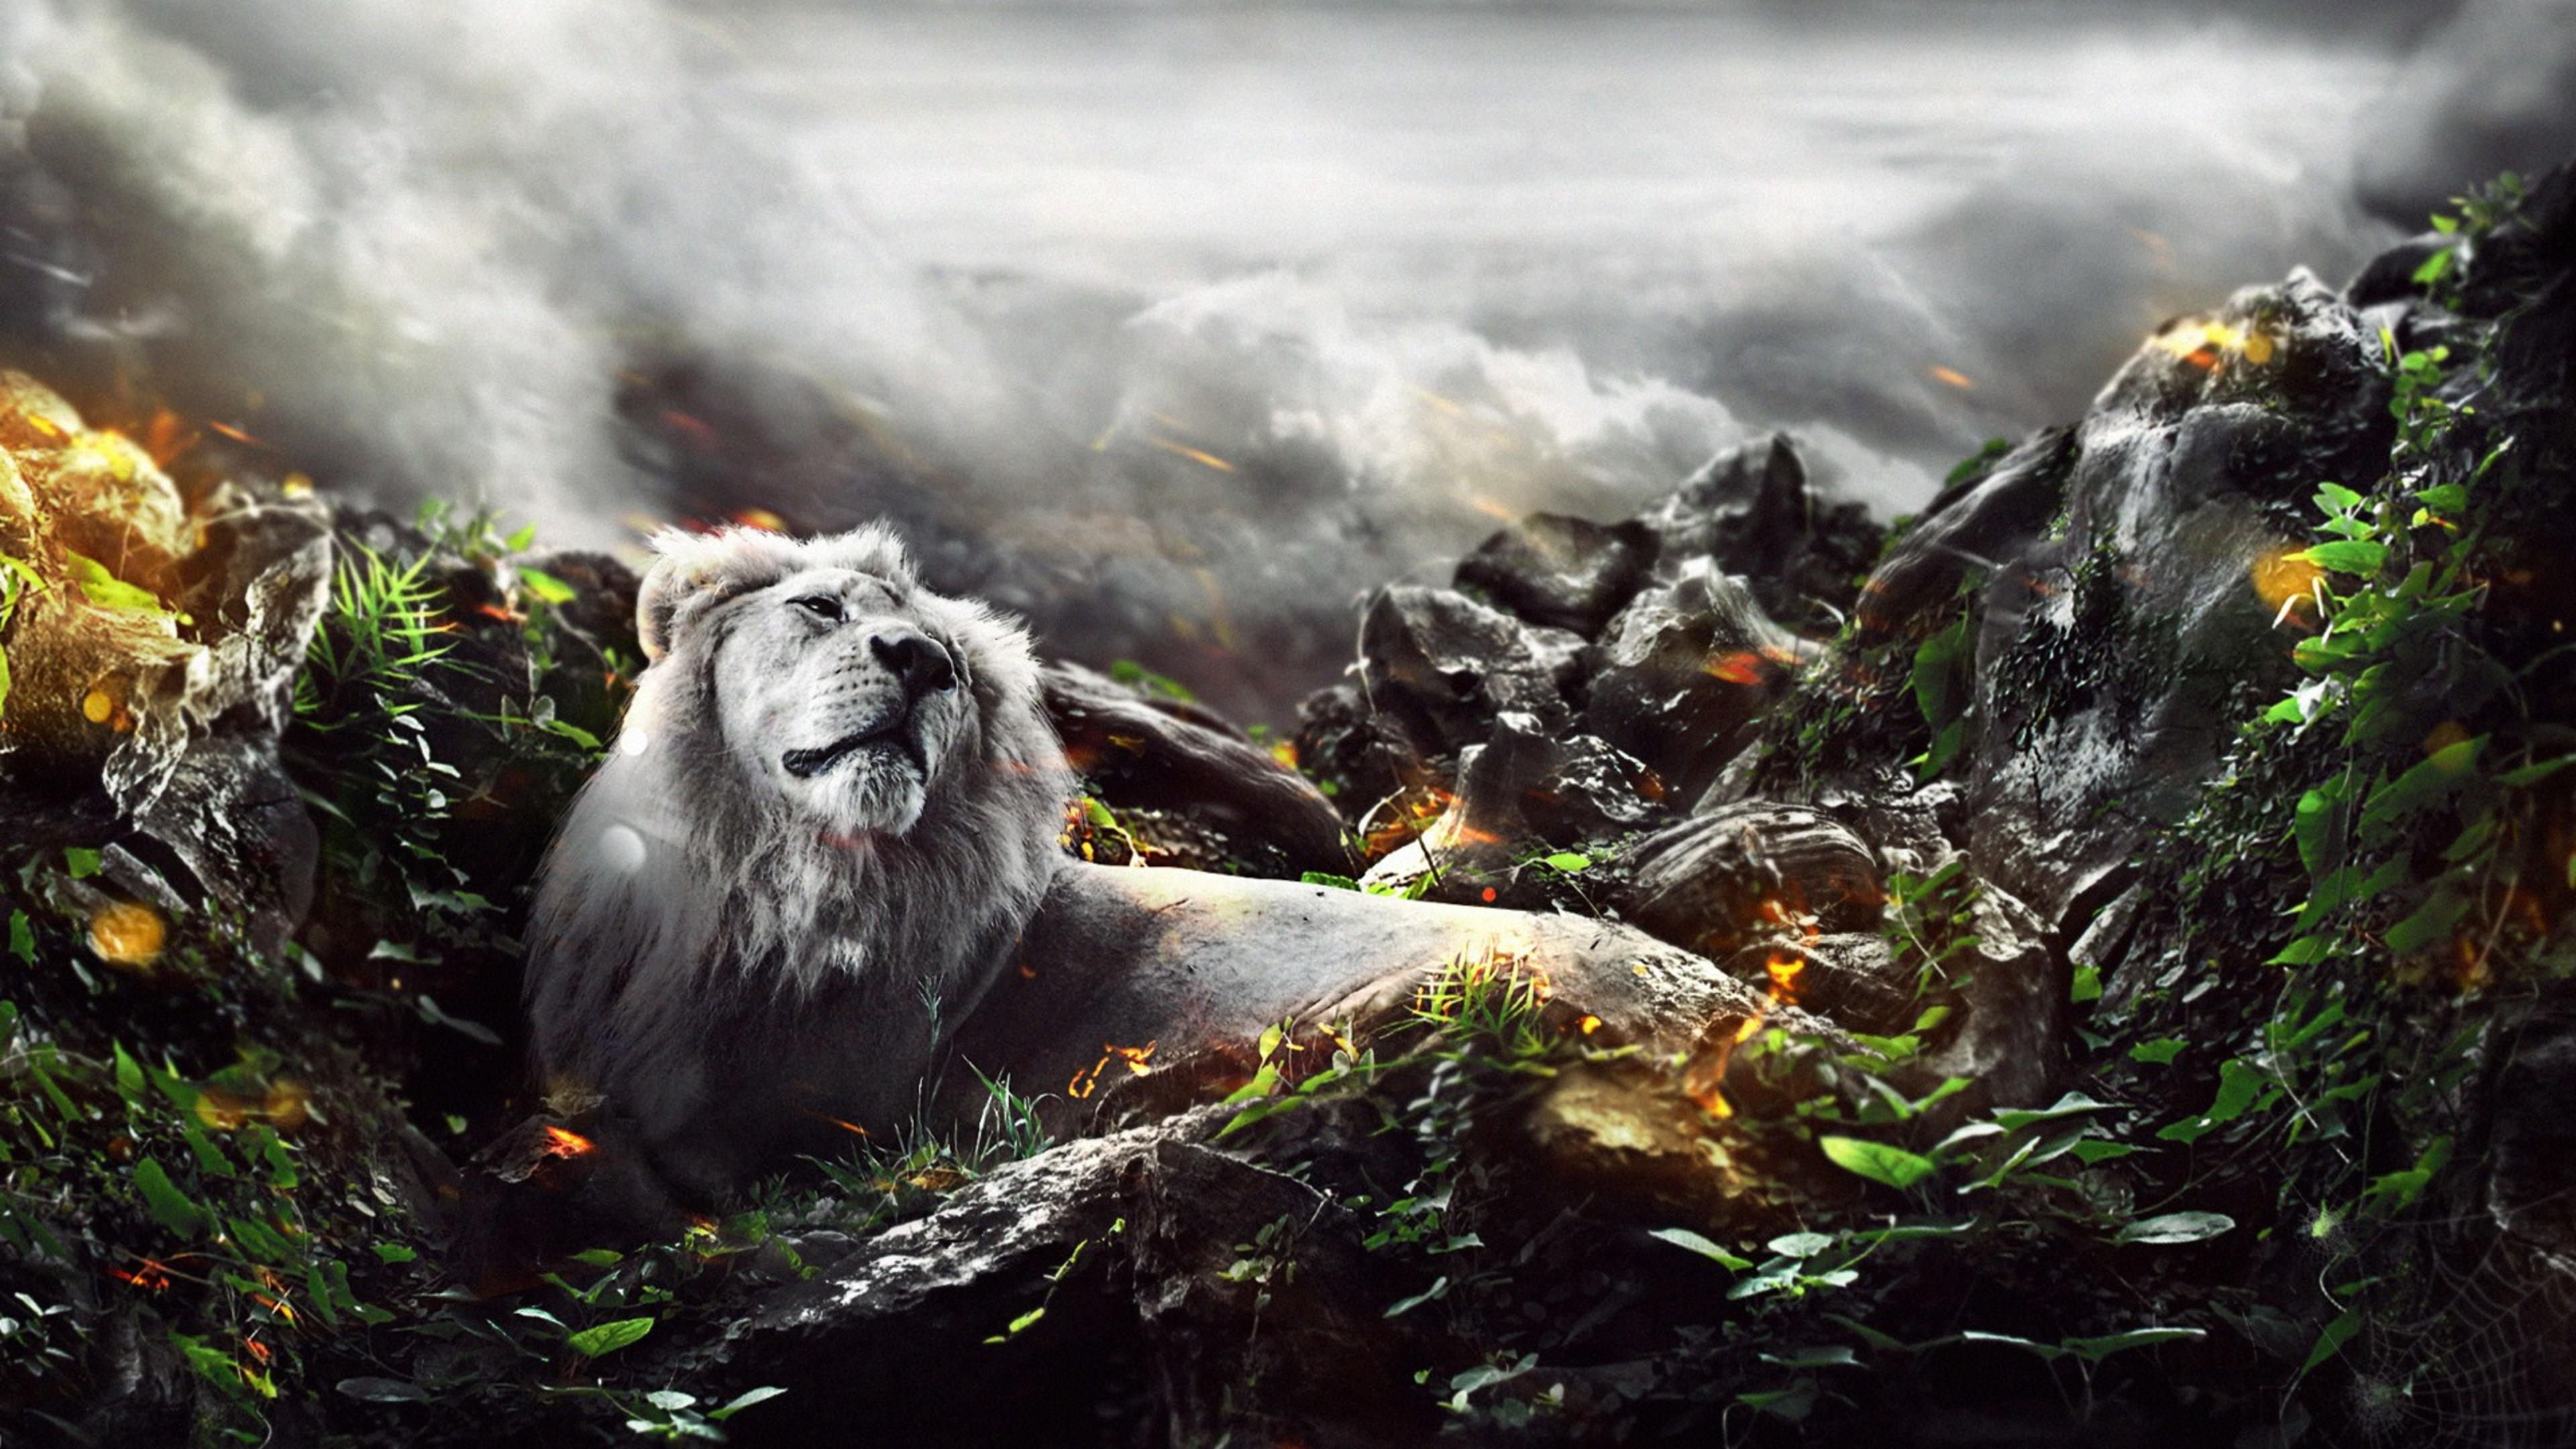 Jungle Lion Creative Hd Creative 4k Wallpapers Images